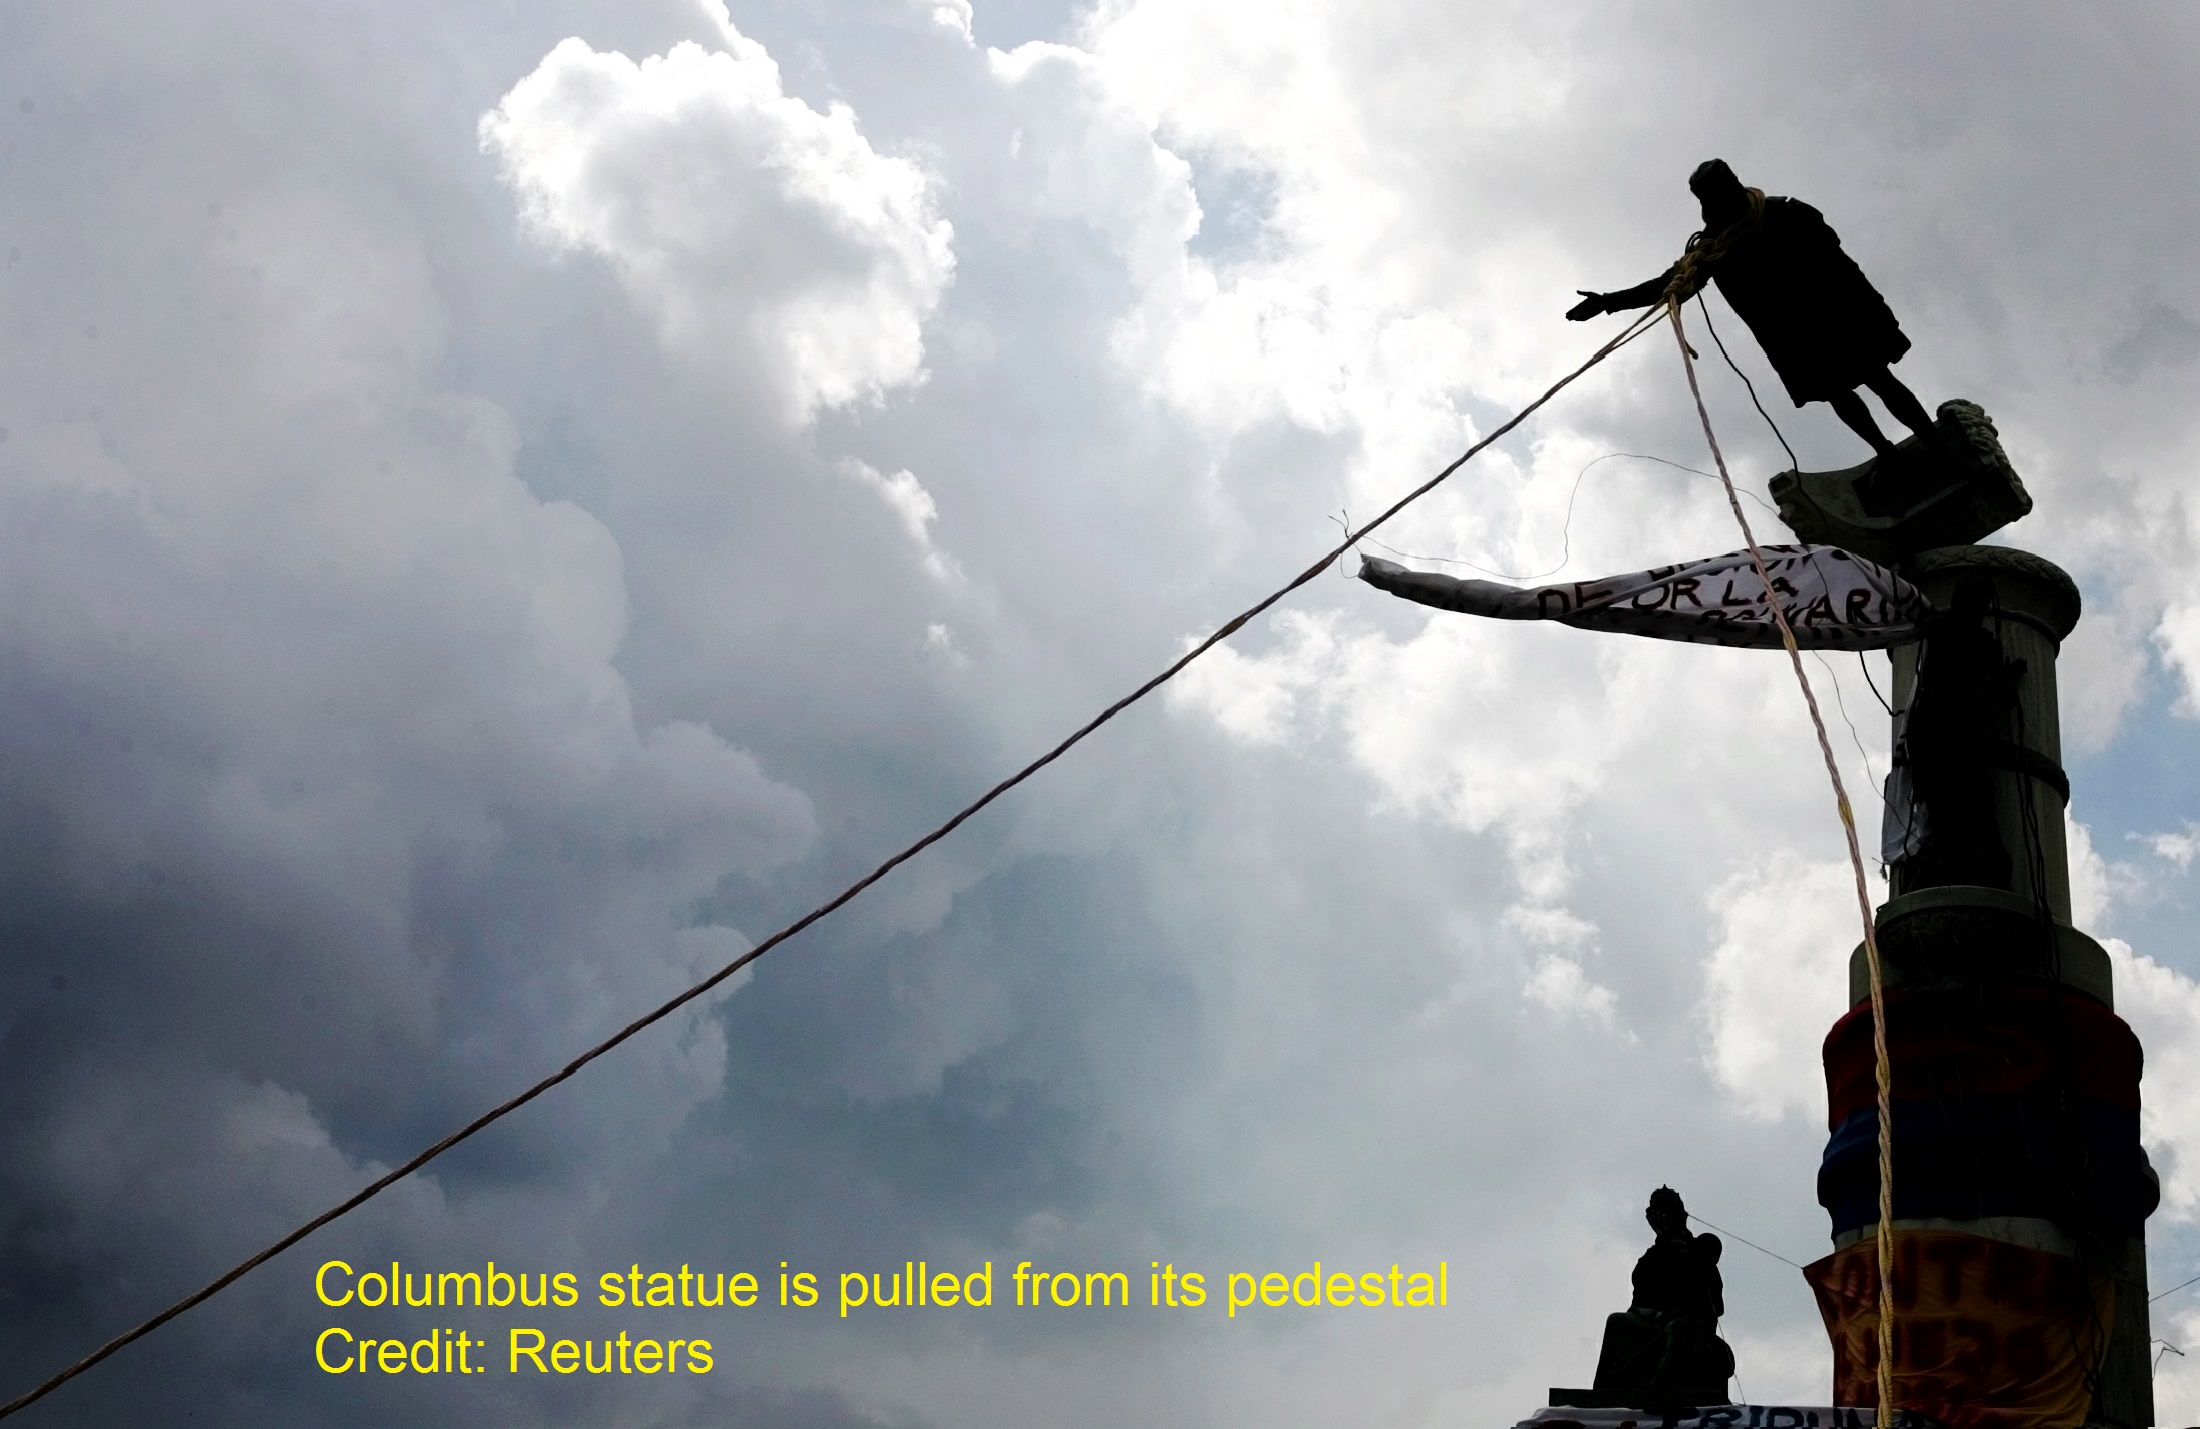 venezuelan-demonstrators-topple-columbus-statue_-_Cropped.jpg